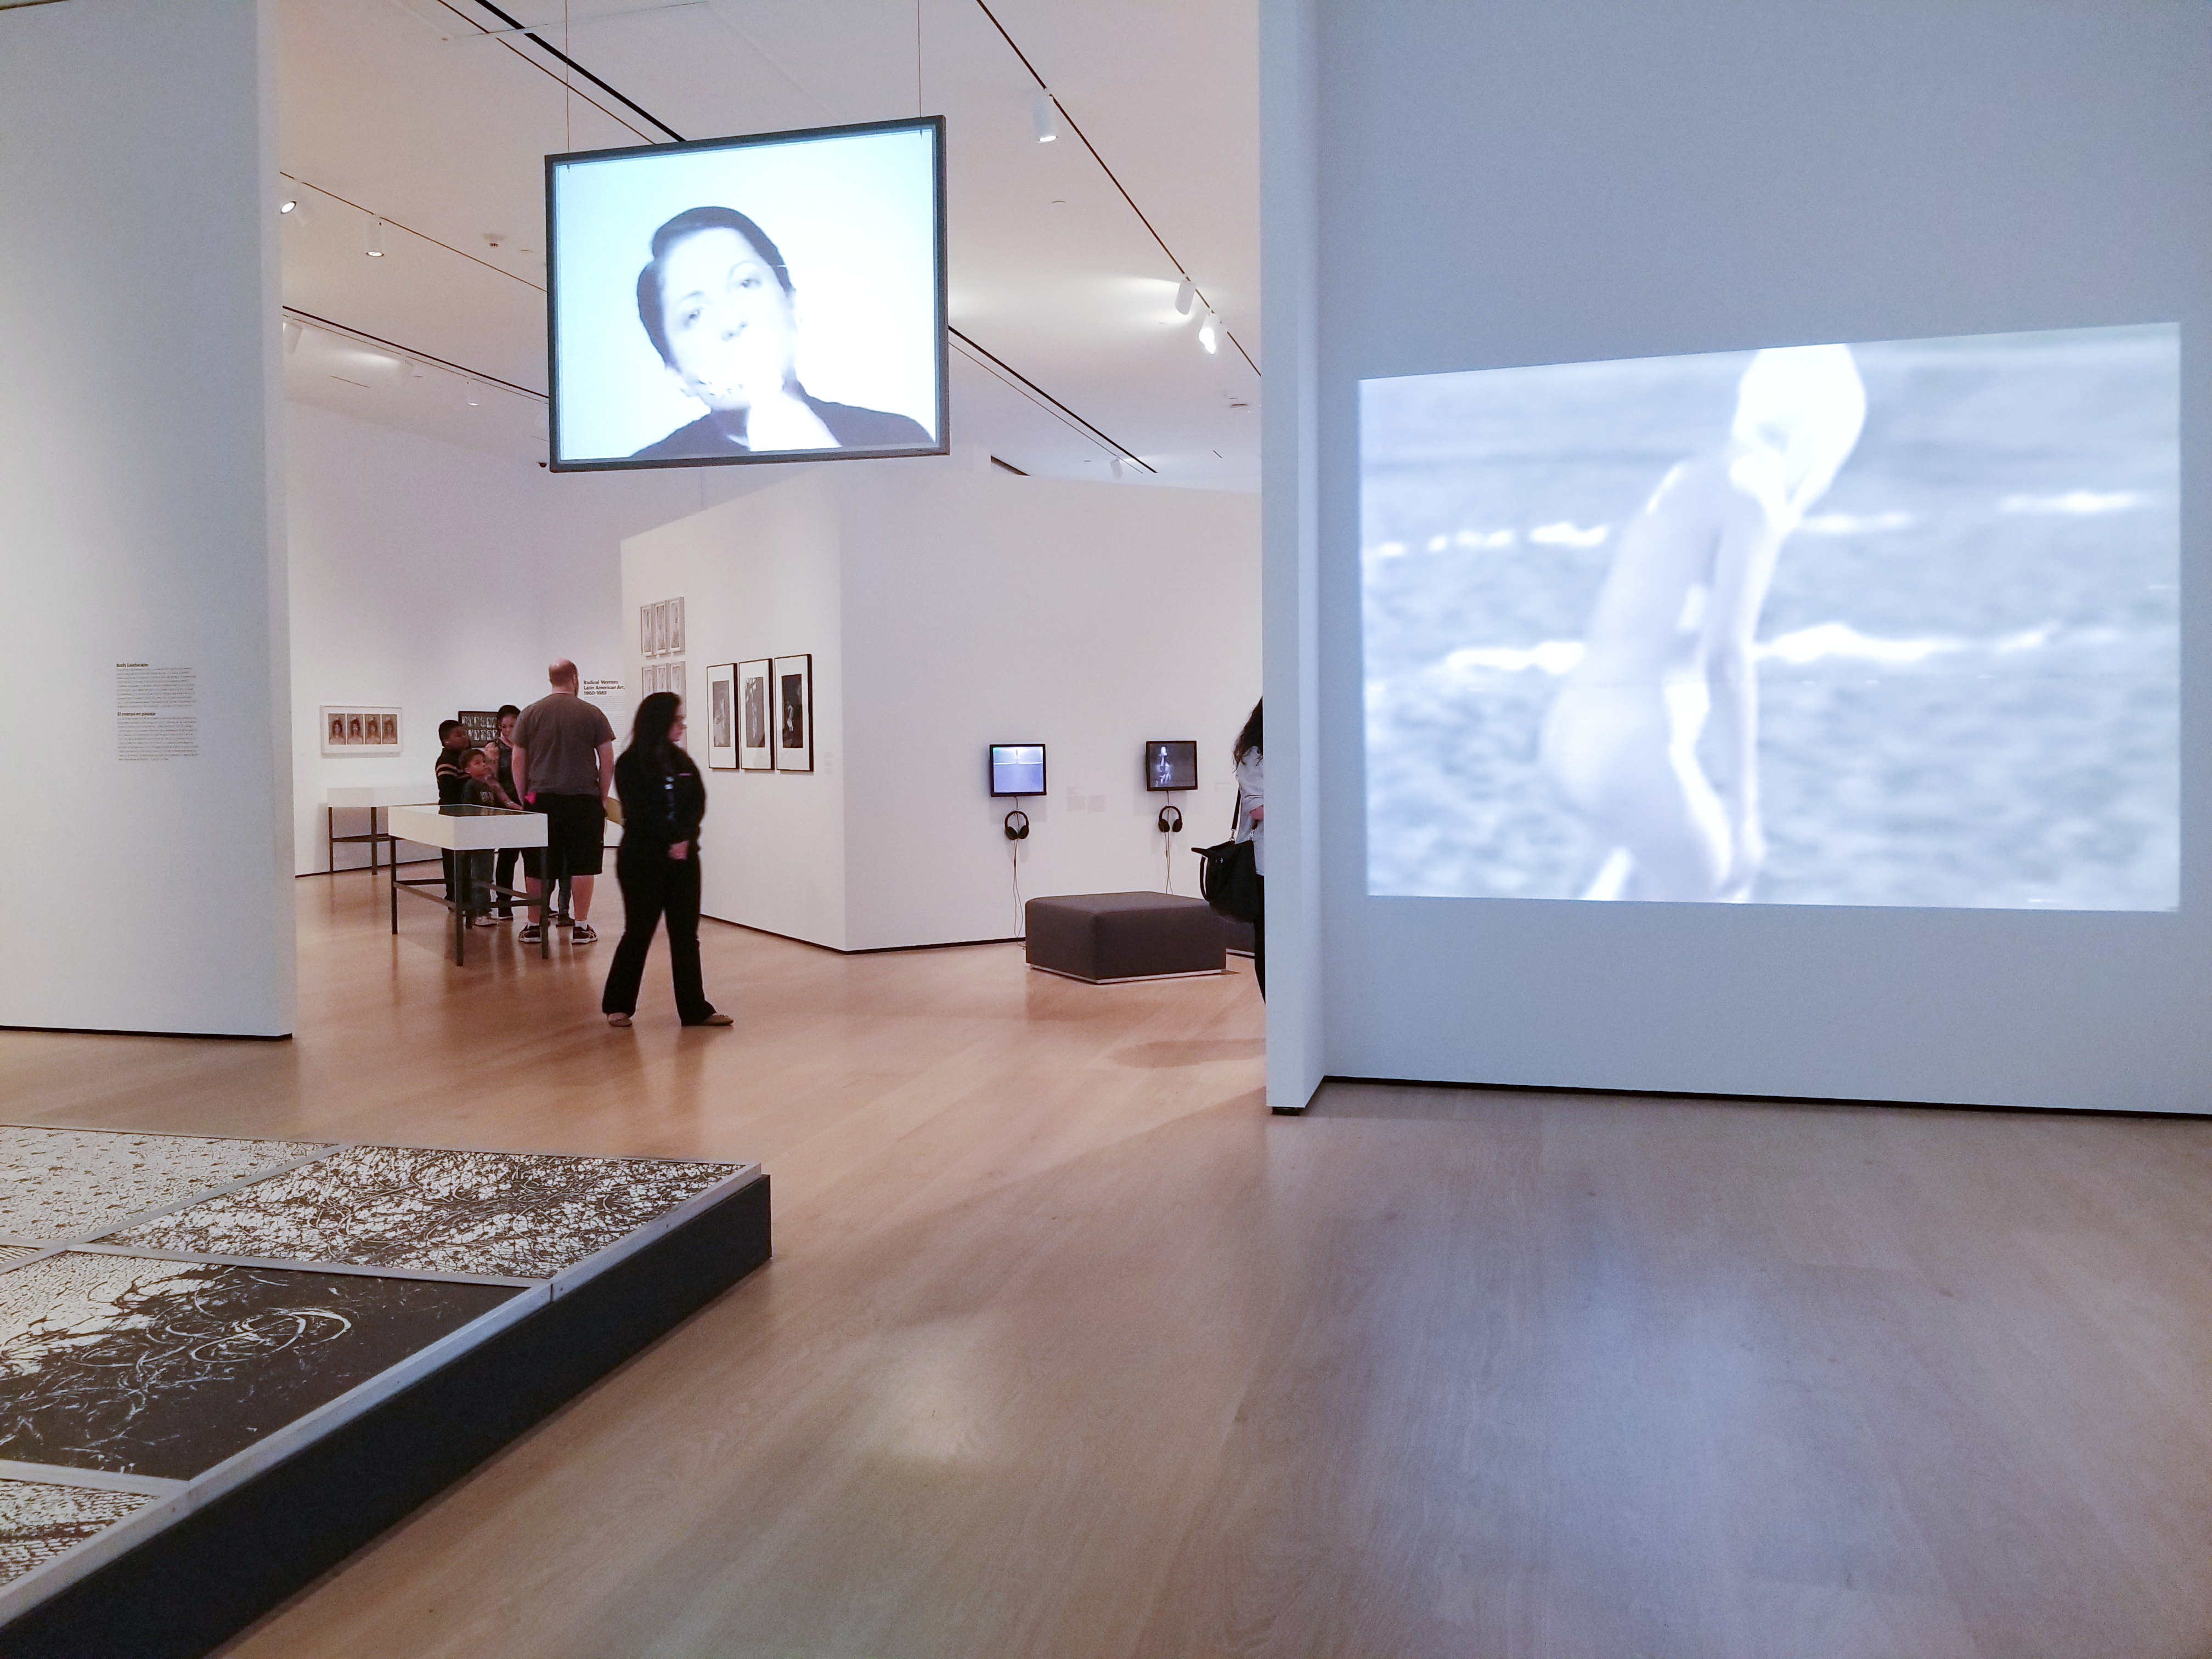 Installation view of Radical Women: Latin American Art, 1960 - 1985 at the Hammer Museum, Los Angeles. Photo by Tempestt Hazel.